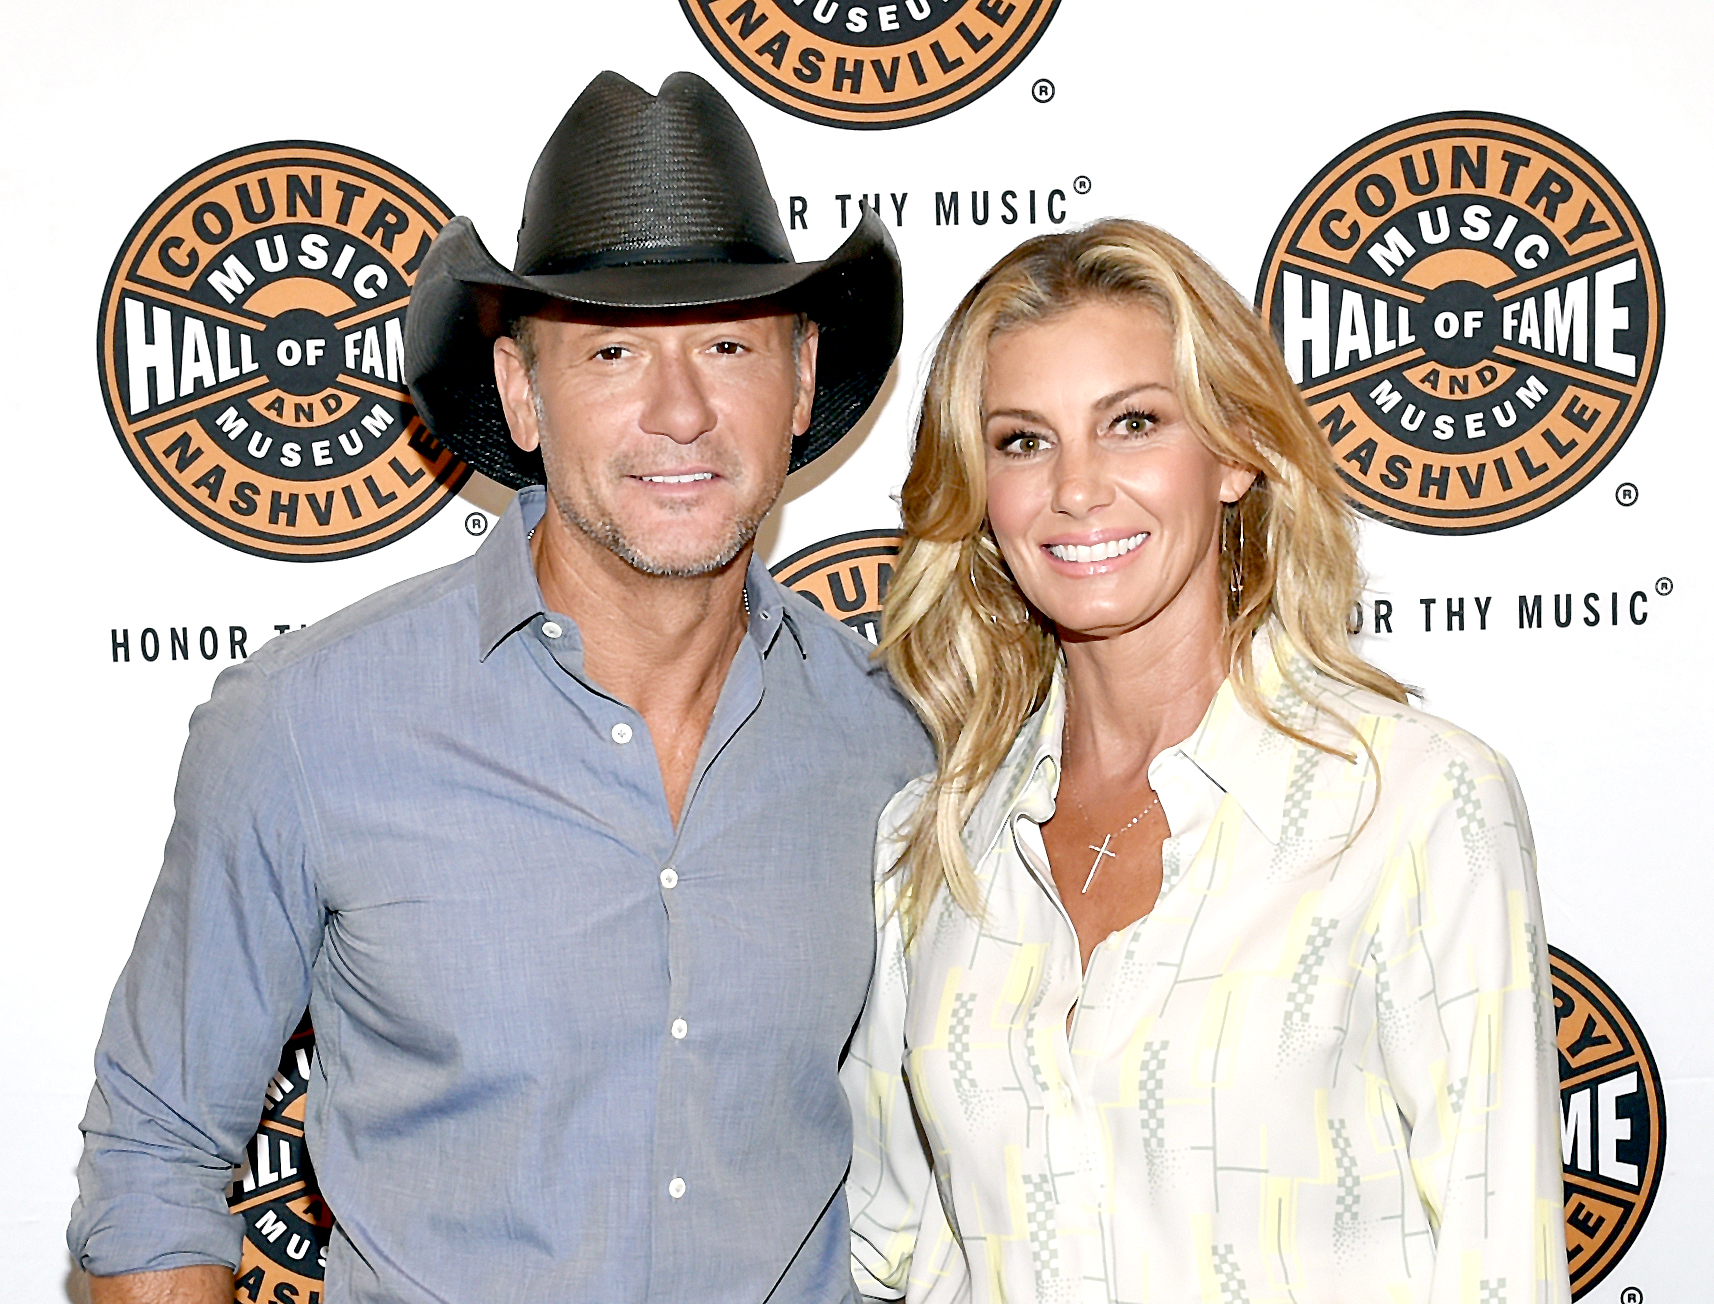 Tim-mcgraw-faith-hill - Tim McGraw and Faith Hill attend the All Access program at The Country Music Hall Of Fame And Museum's CMA Theater on May 3, 2018 in Nashville, Tennessee.